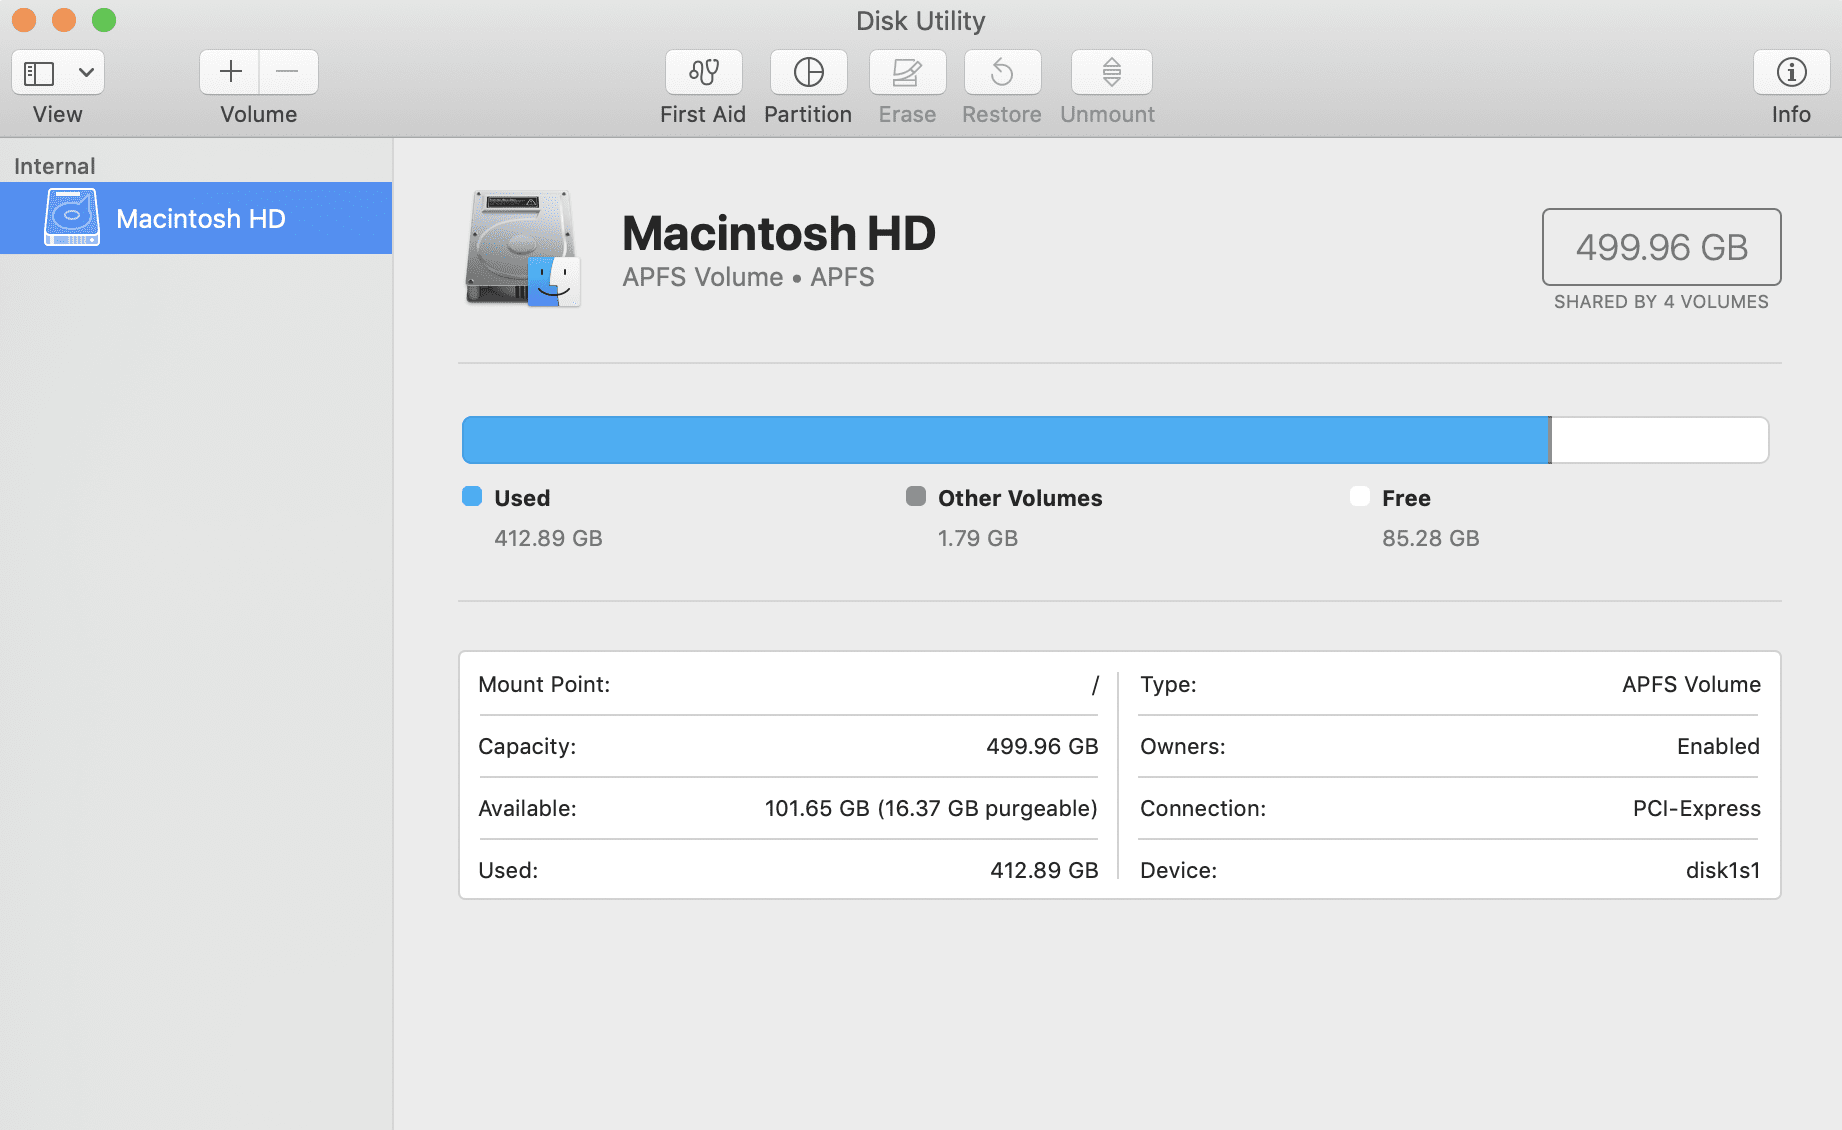 Apple's Disk Utility application